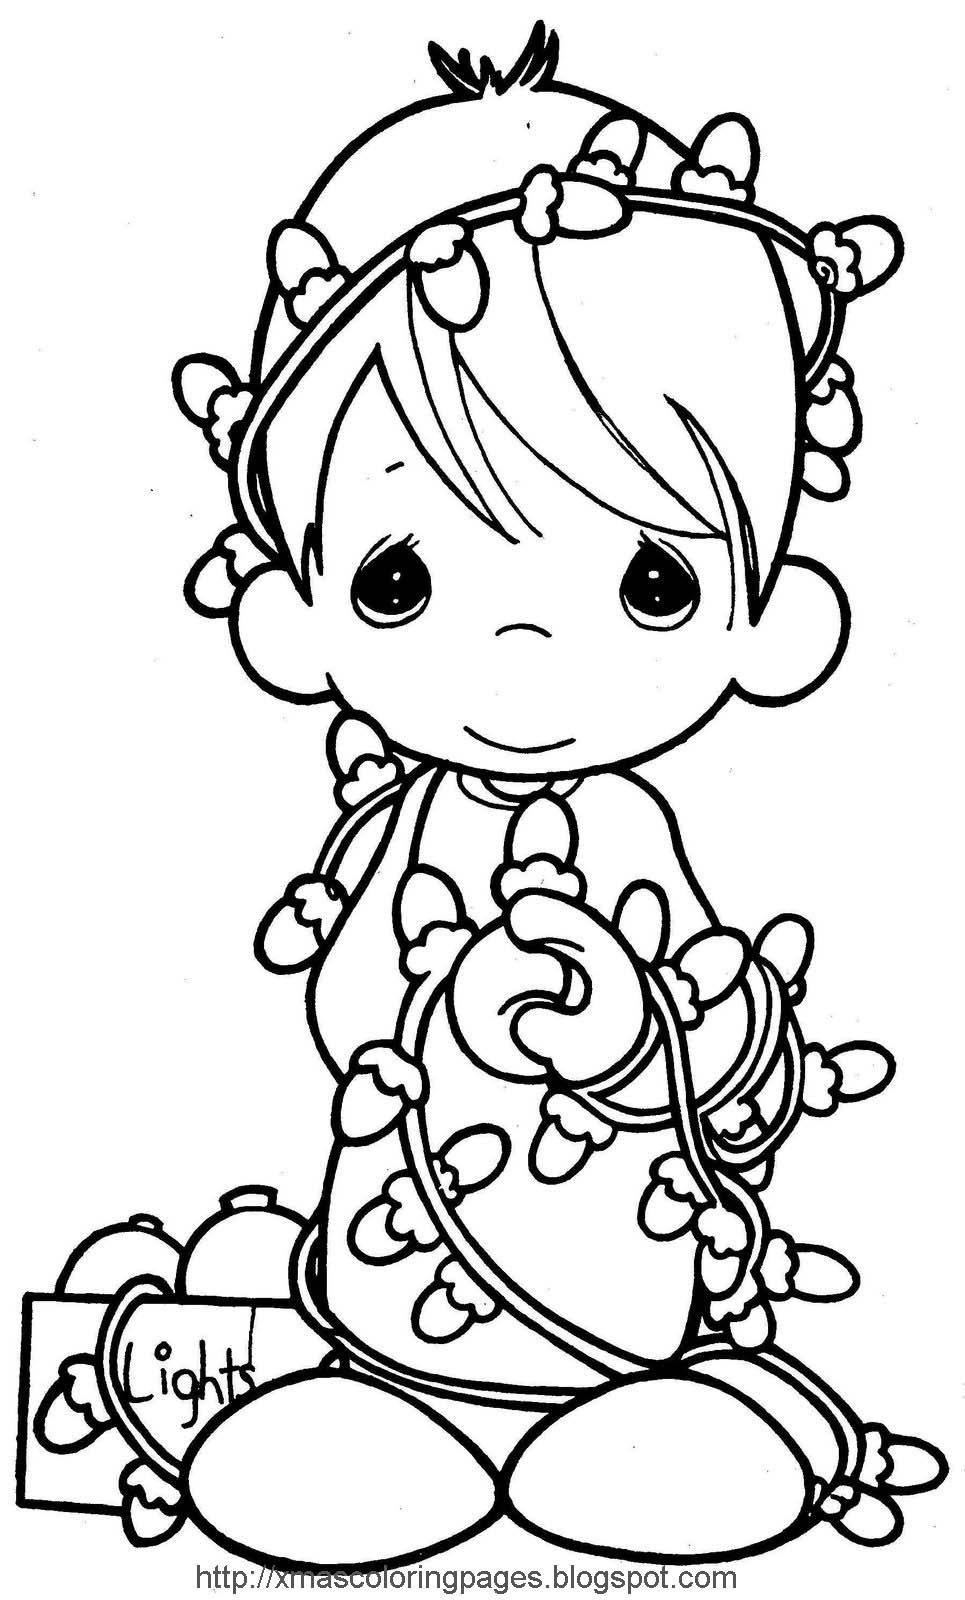 coloring christmas printables merry christmas coloring pages to download and print for free coloring christmas printables